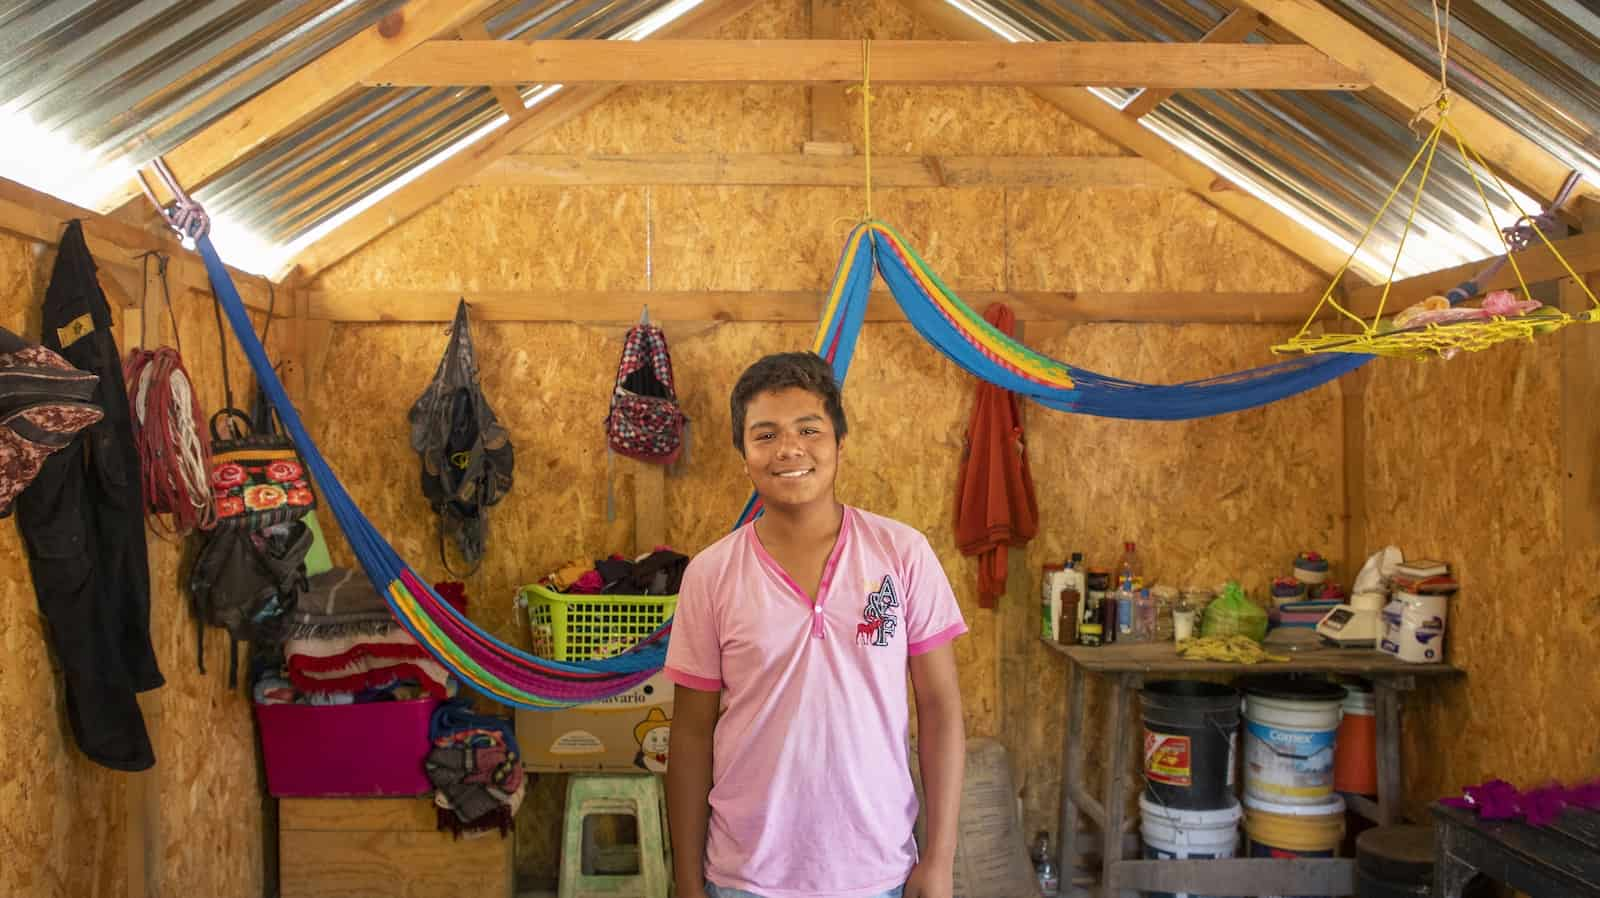 A boy in a pink shirt and jean short stands in the interior of a home built from plywood and metal sheets. Colorful hammocks hang from the ceiling, and personal items, like backpacks hang on the walls. There is a small table in one corner.